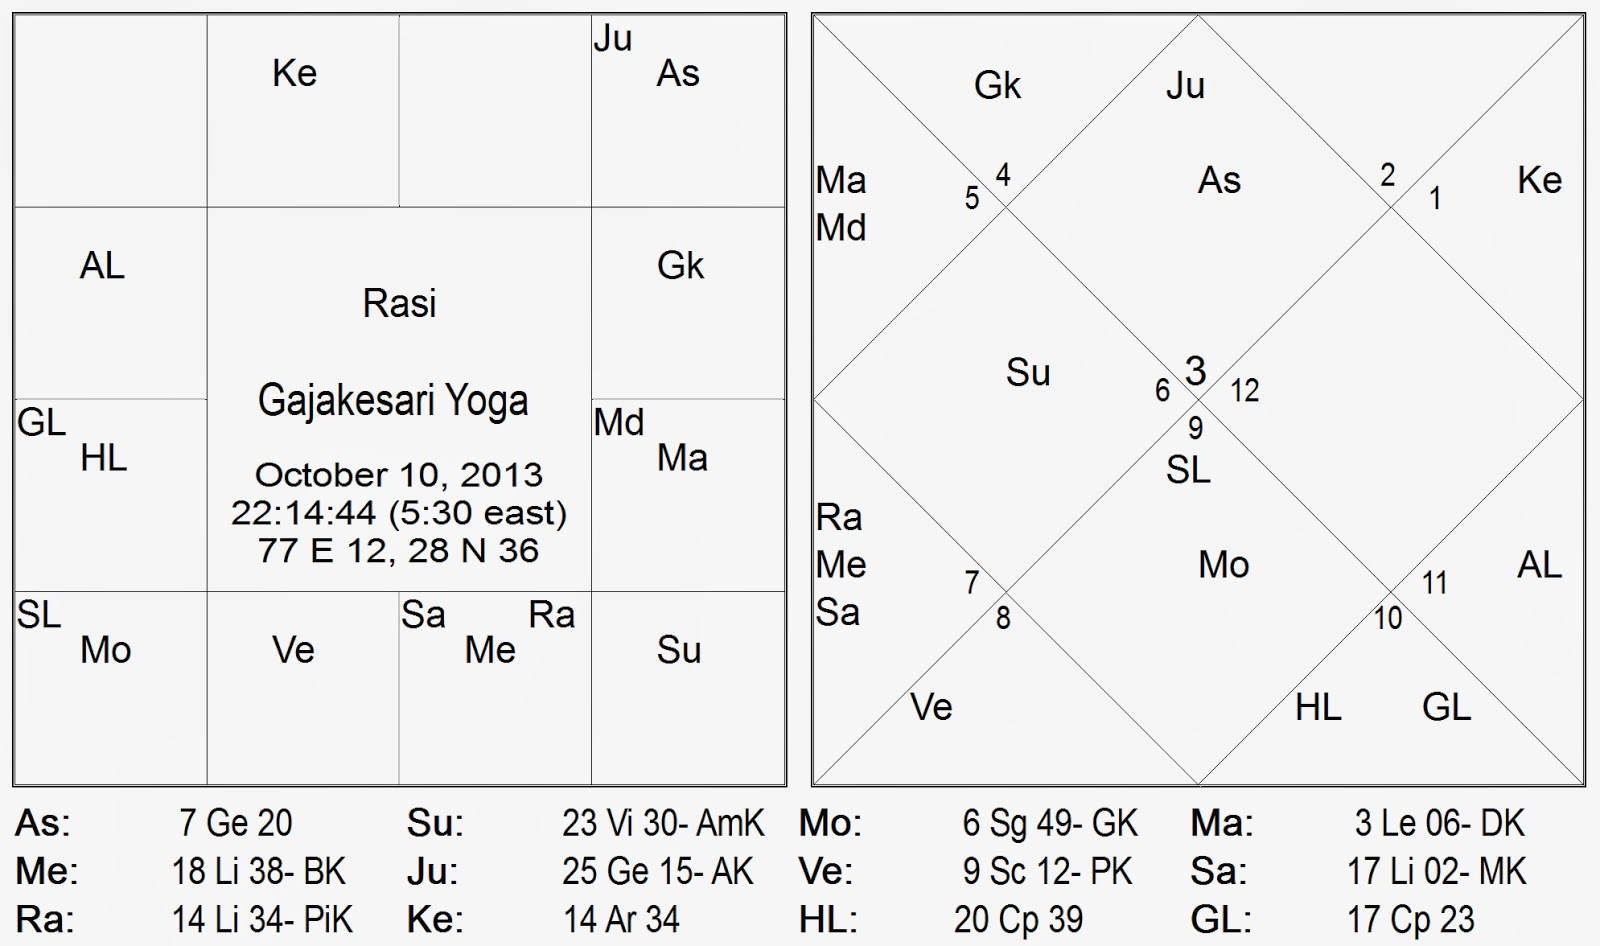 The impact of jupiter is further heightened in the gajakesari yoga because the transit moon is in sagittarius dhanu a r i dhanusha rashi a sign ruled by